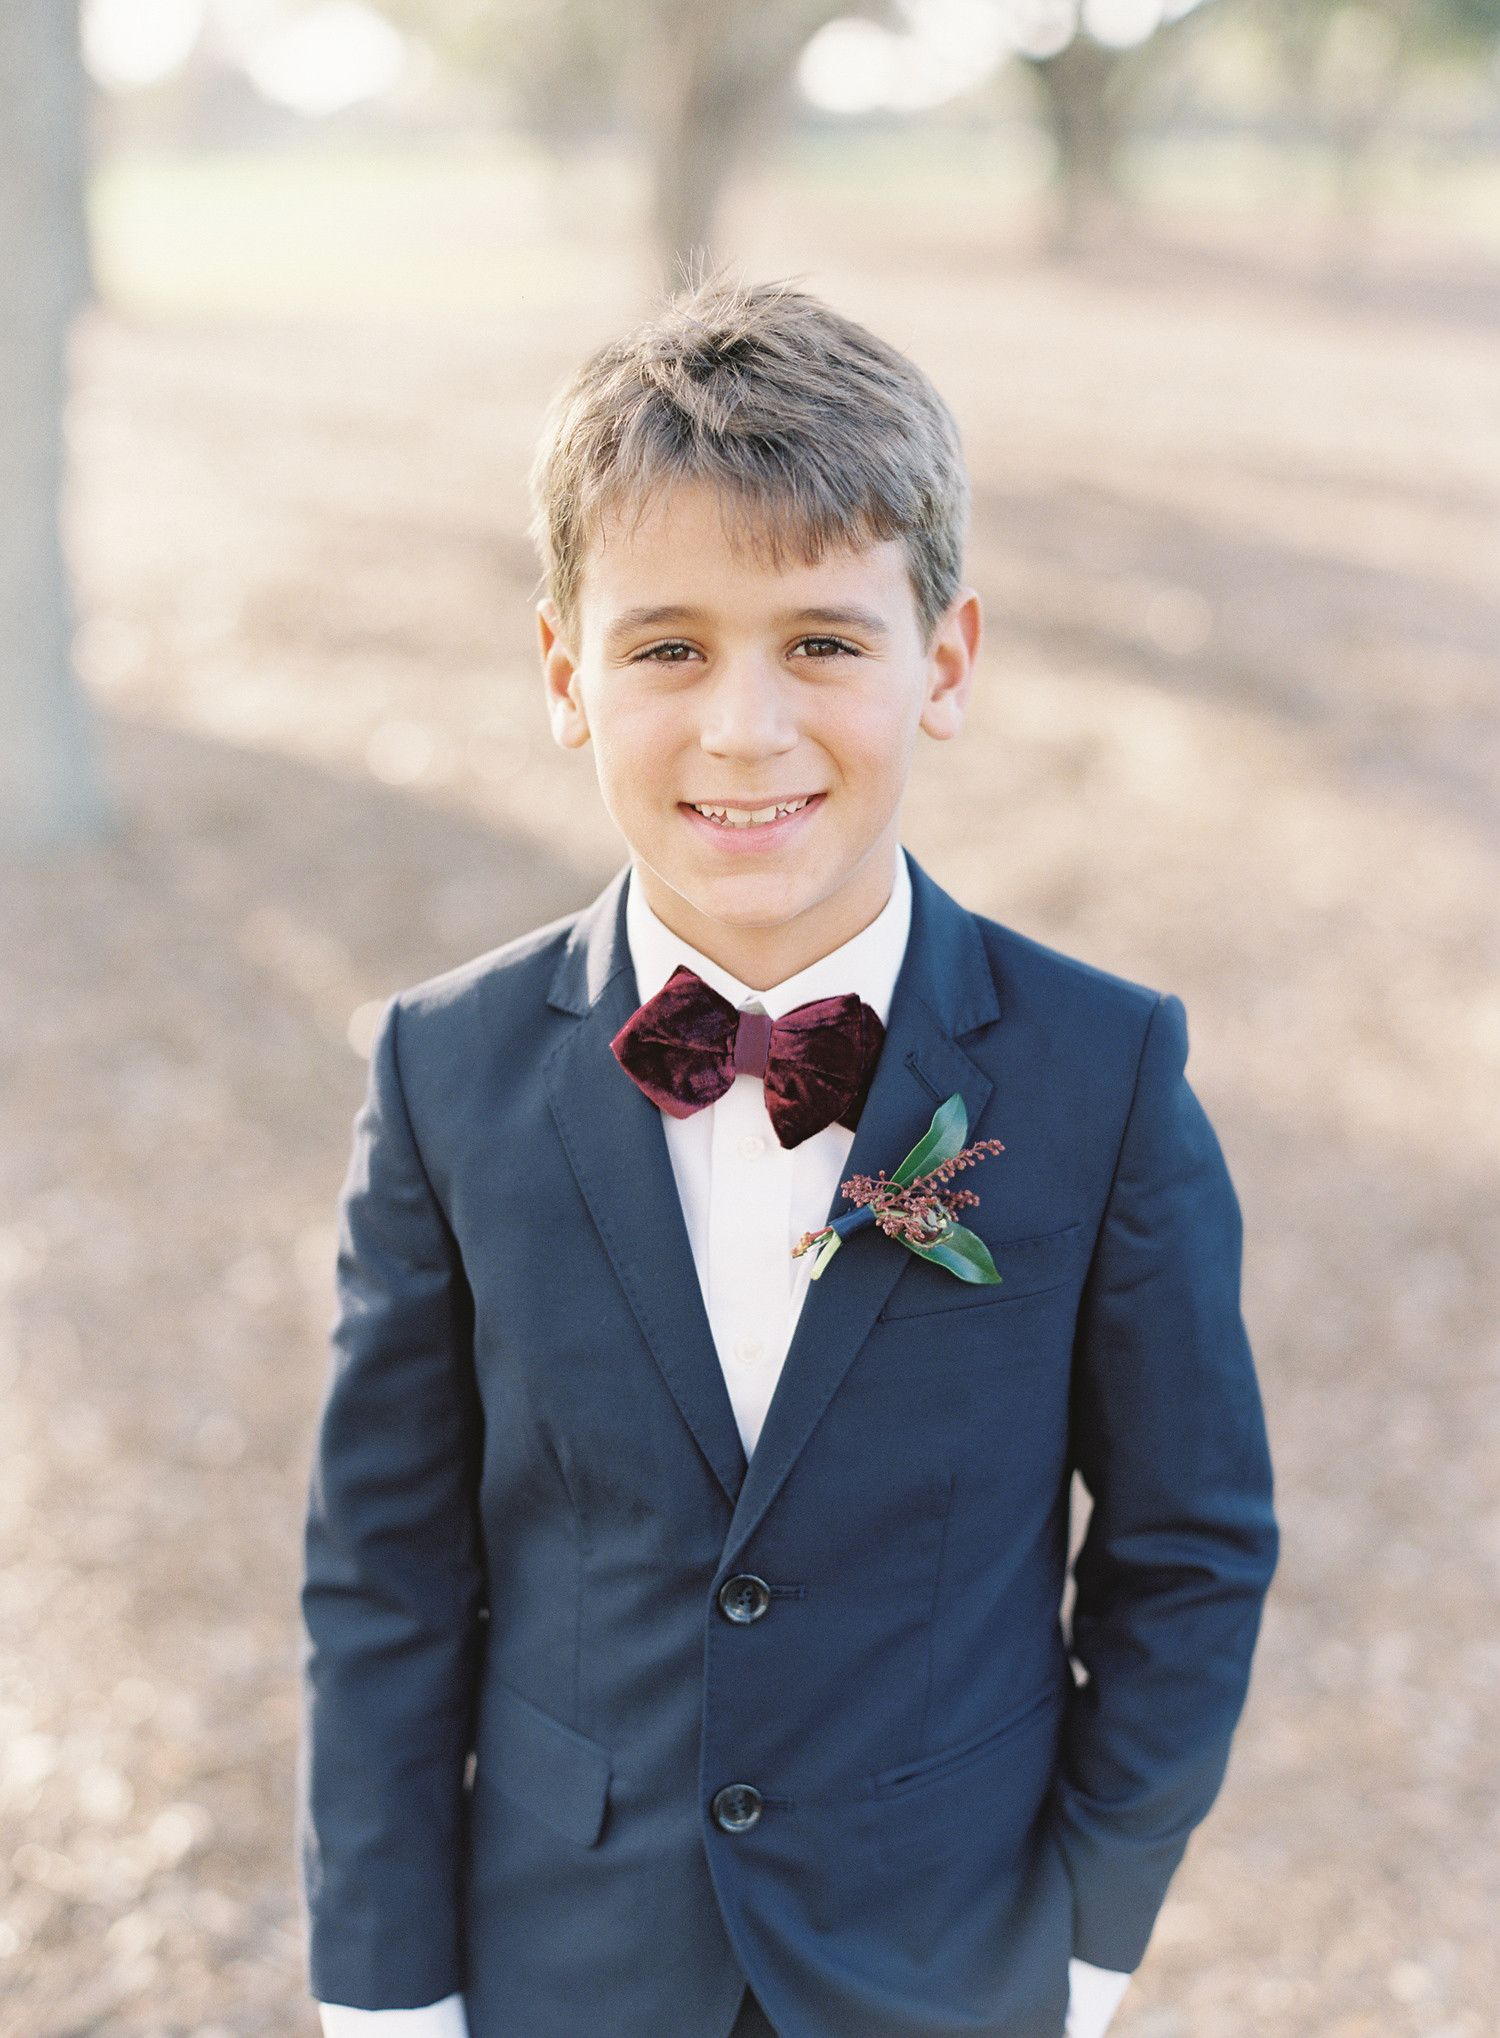 23 Ideas for Your Ring Bearer's Boutonnière Diamond